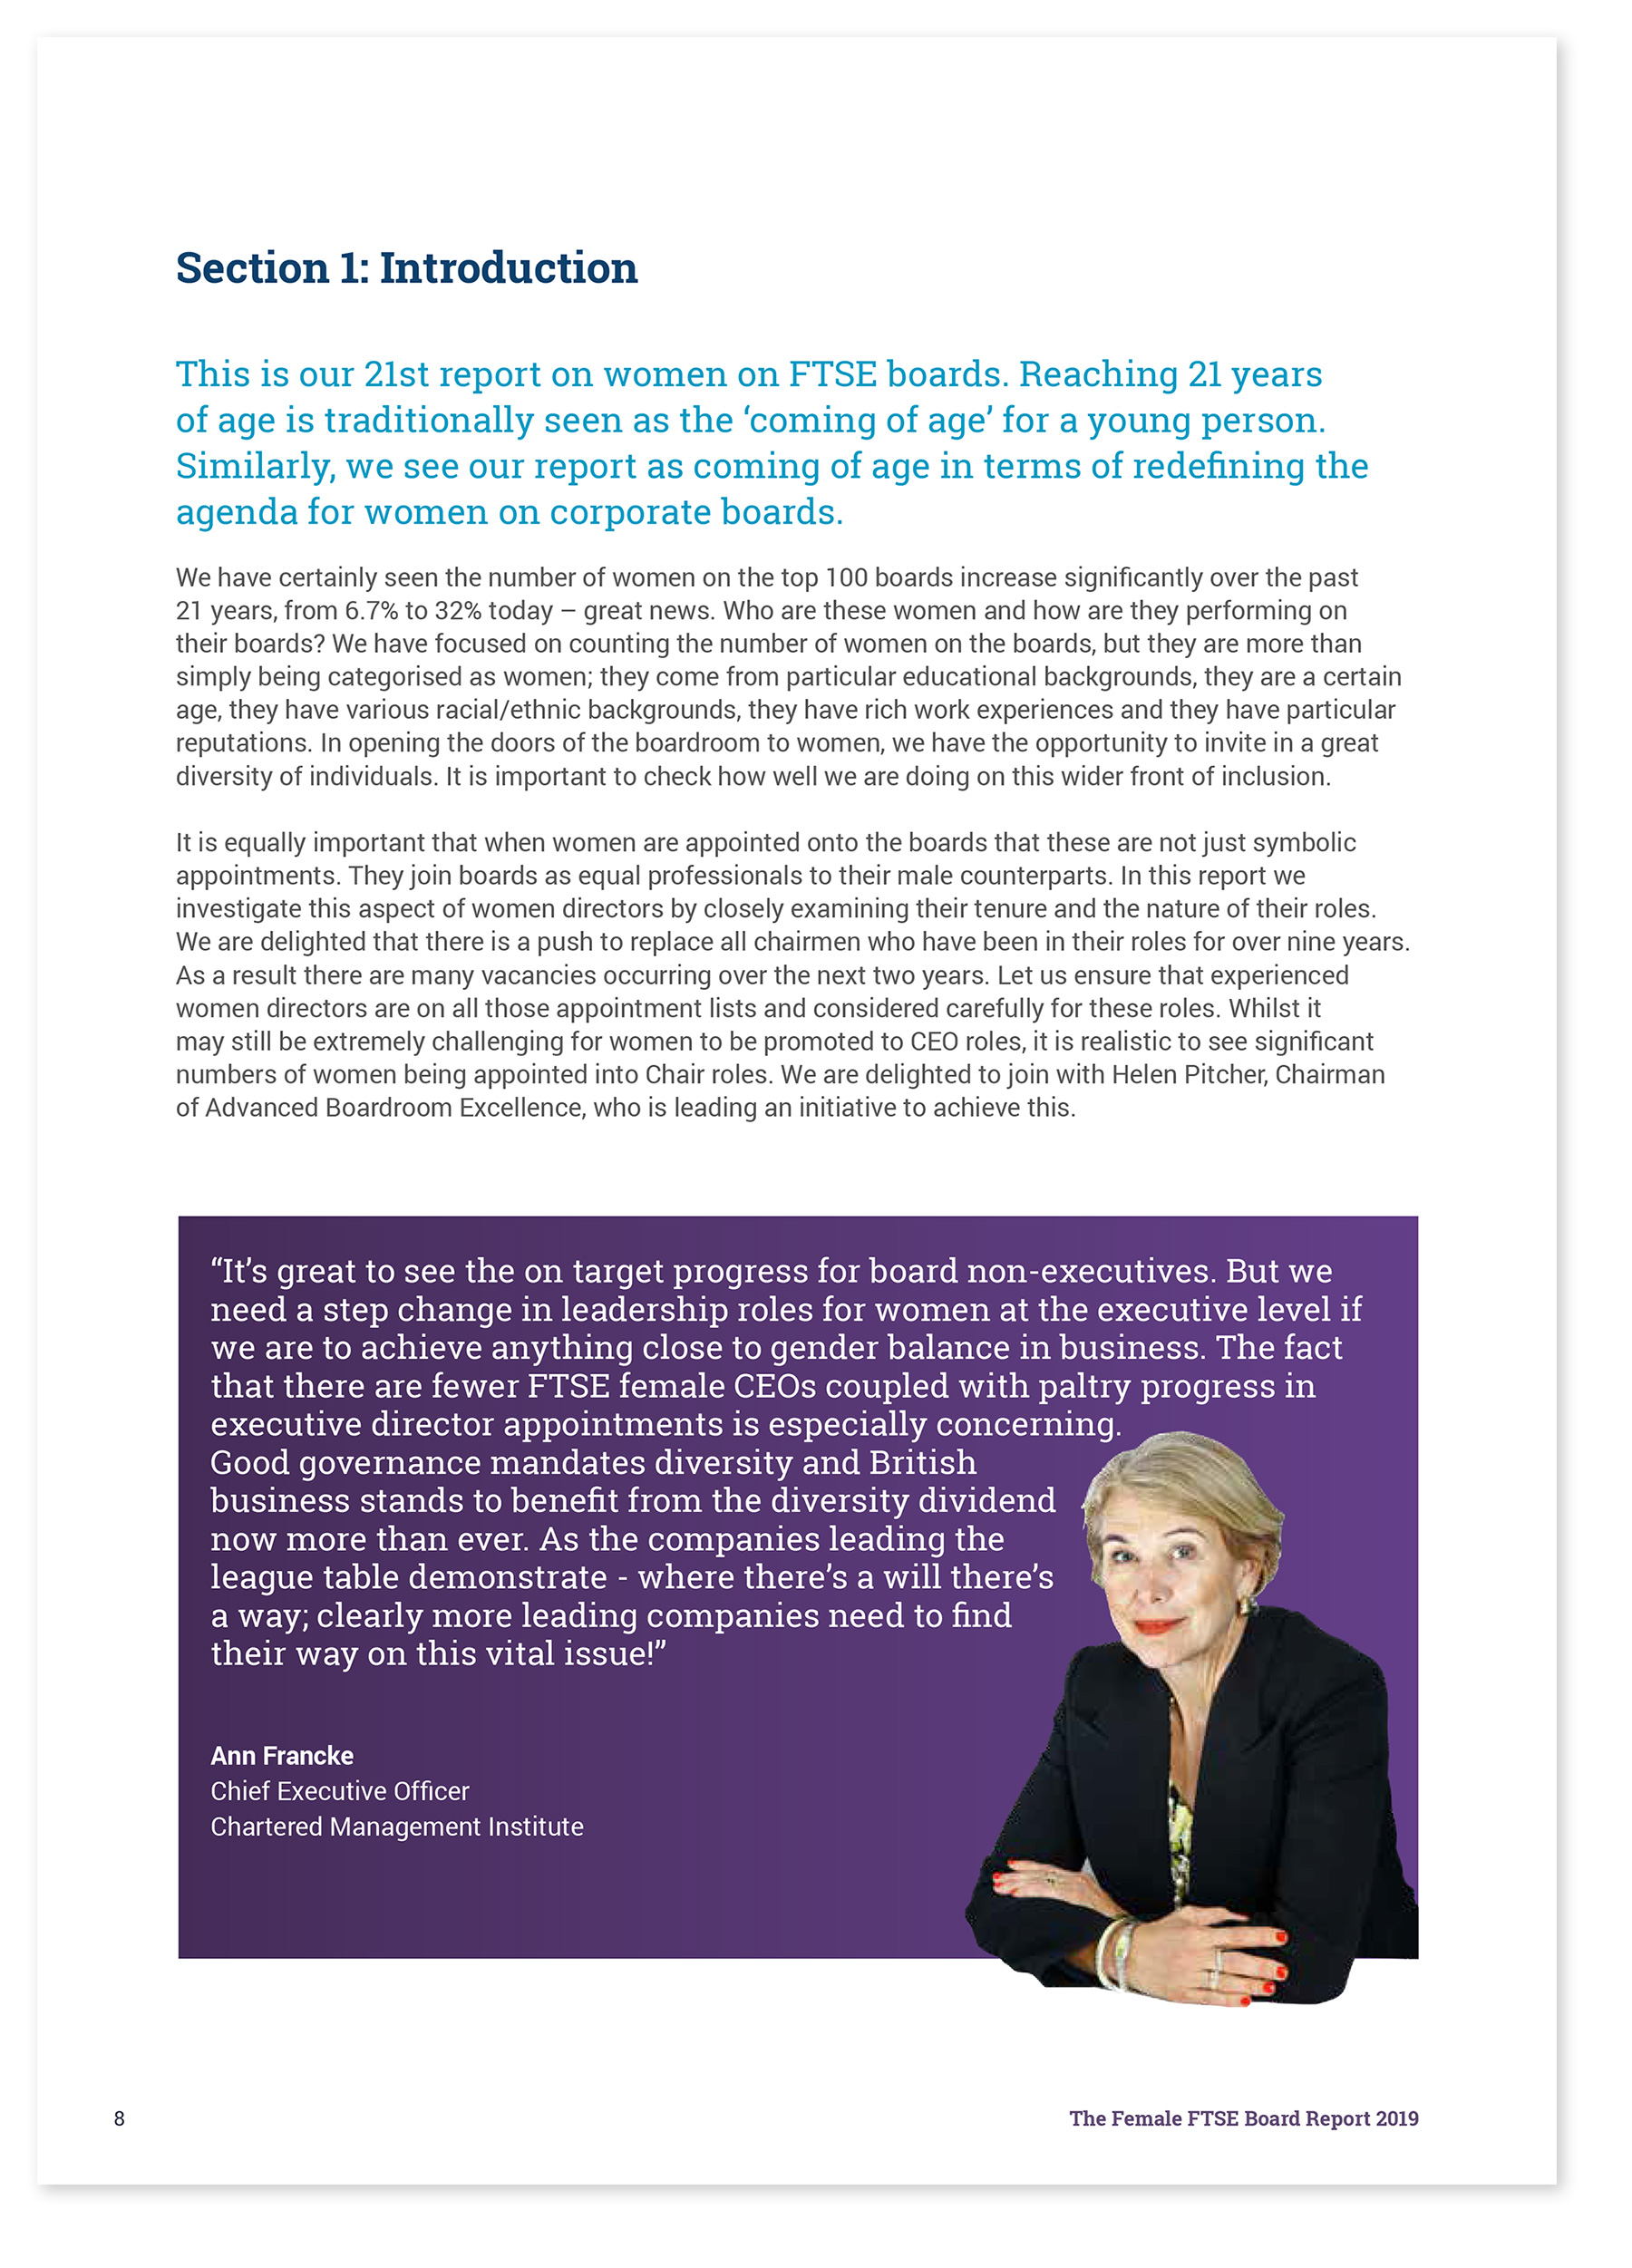 Female-FTSE-Report-page-8.jpg